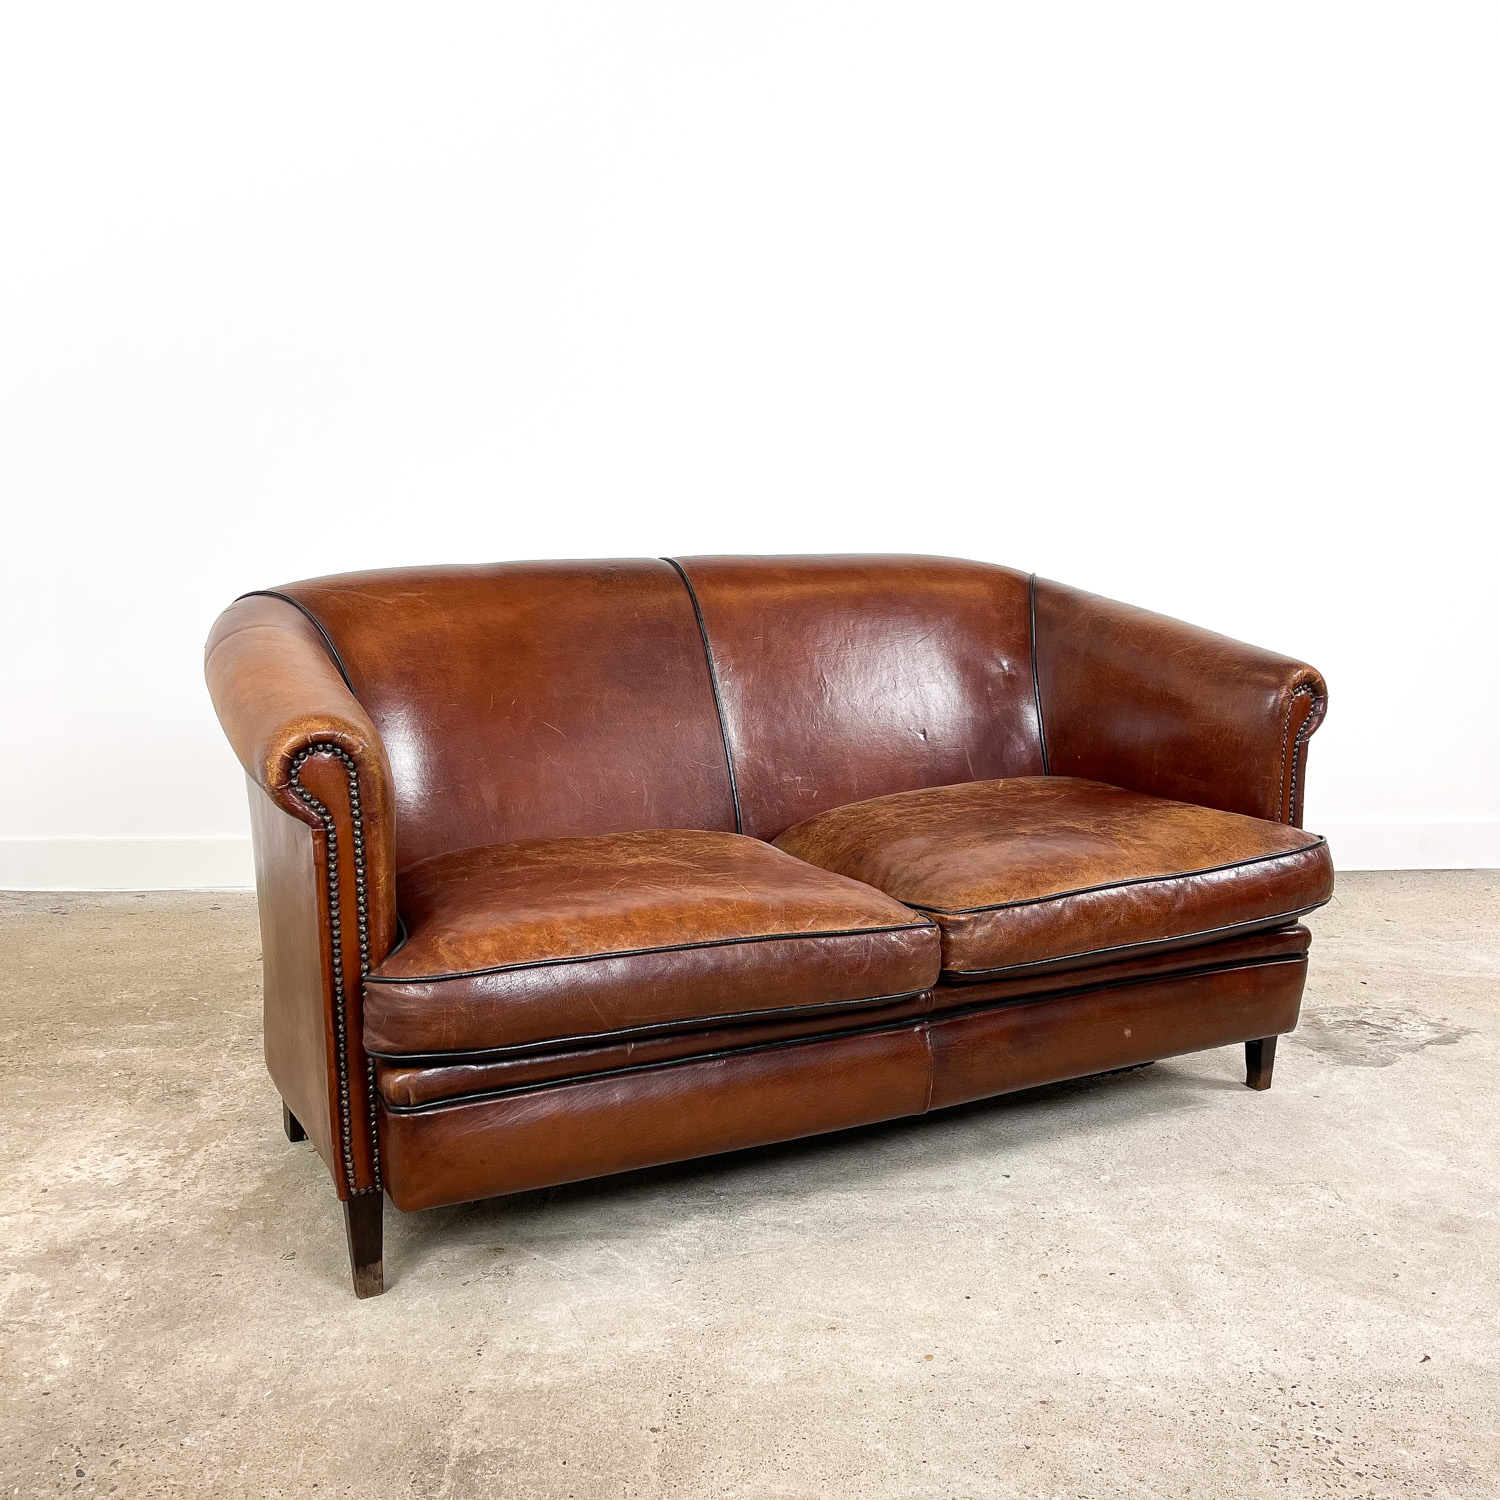 Vintage sheep leather club sofa two seater